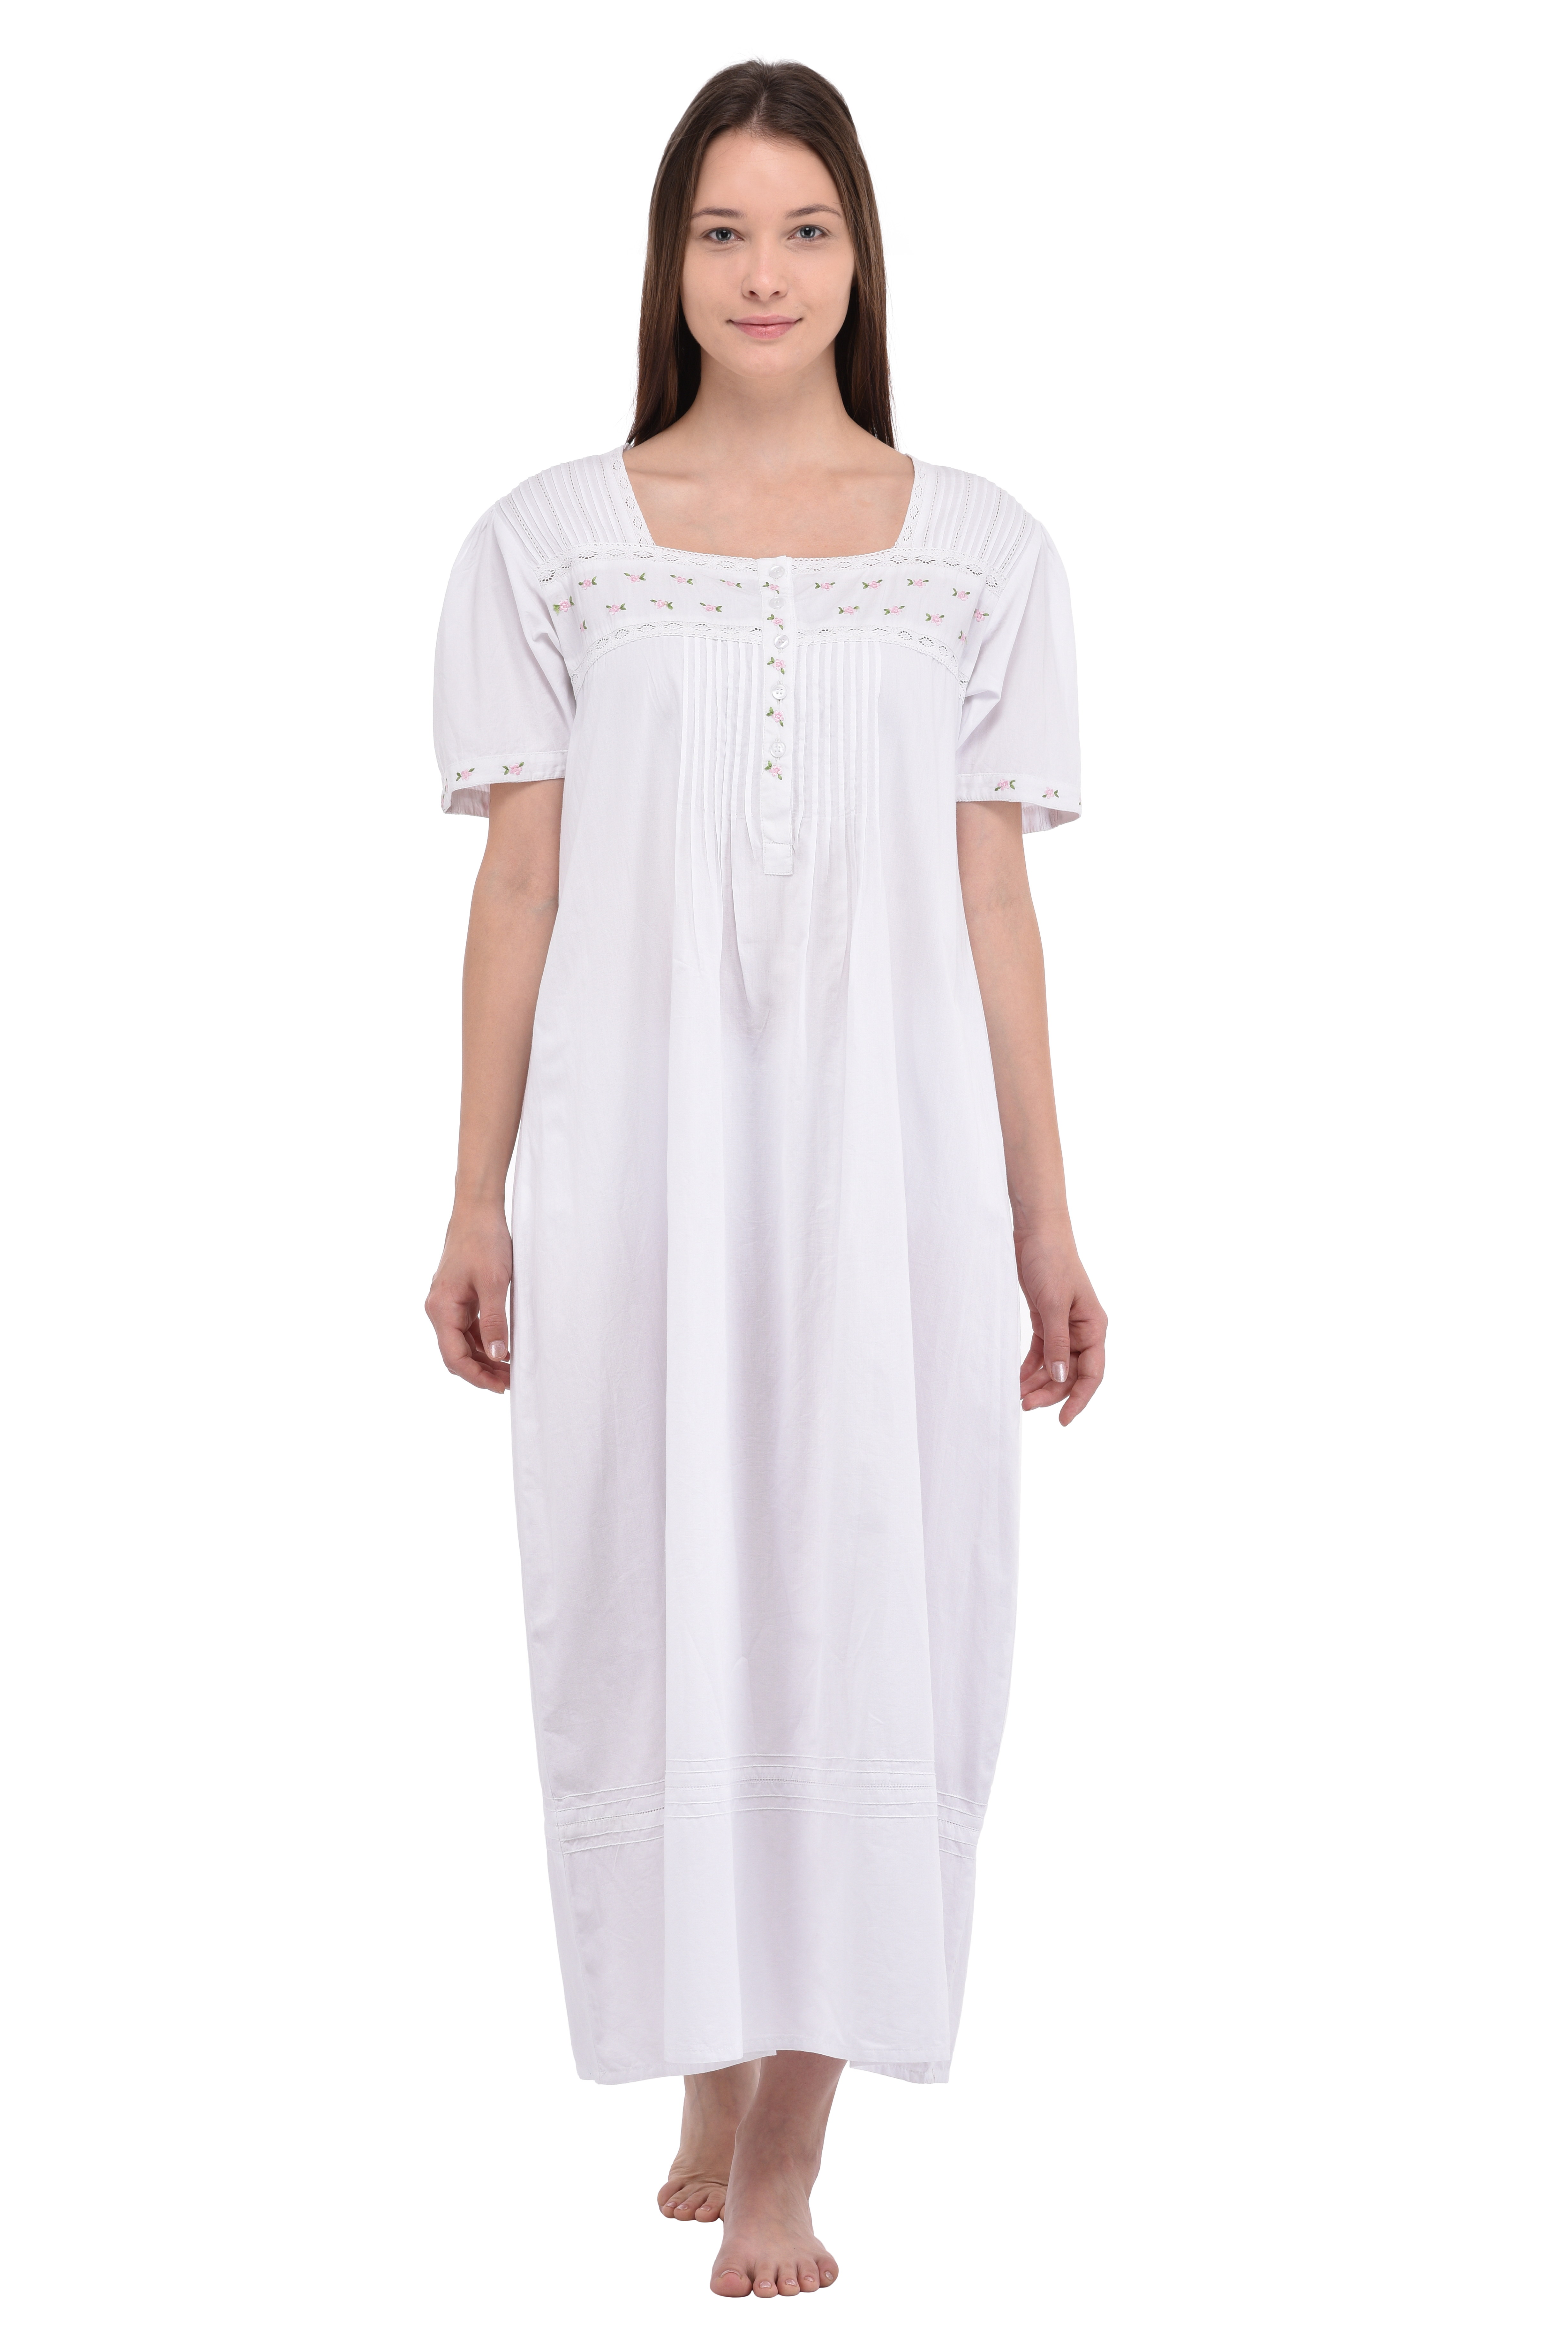 White Cotton Short Sleeve Embroidered Nightdress ... 9097c6284